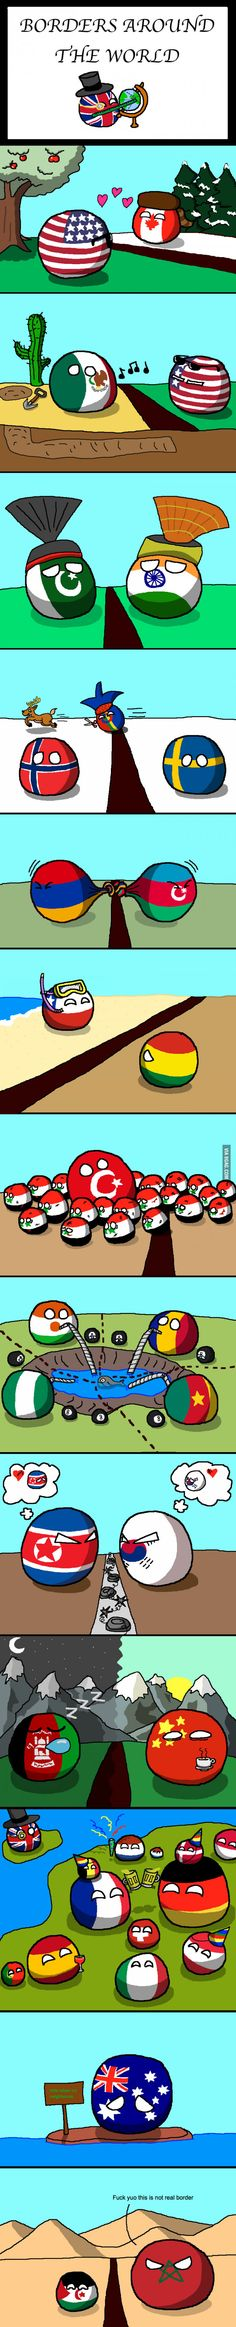 Countryball borders